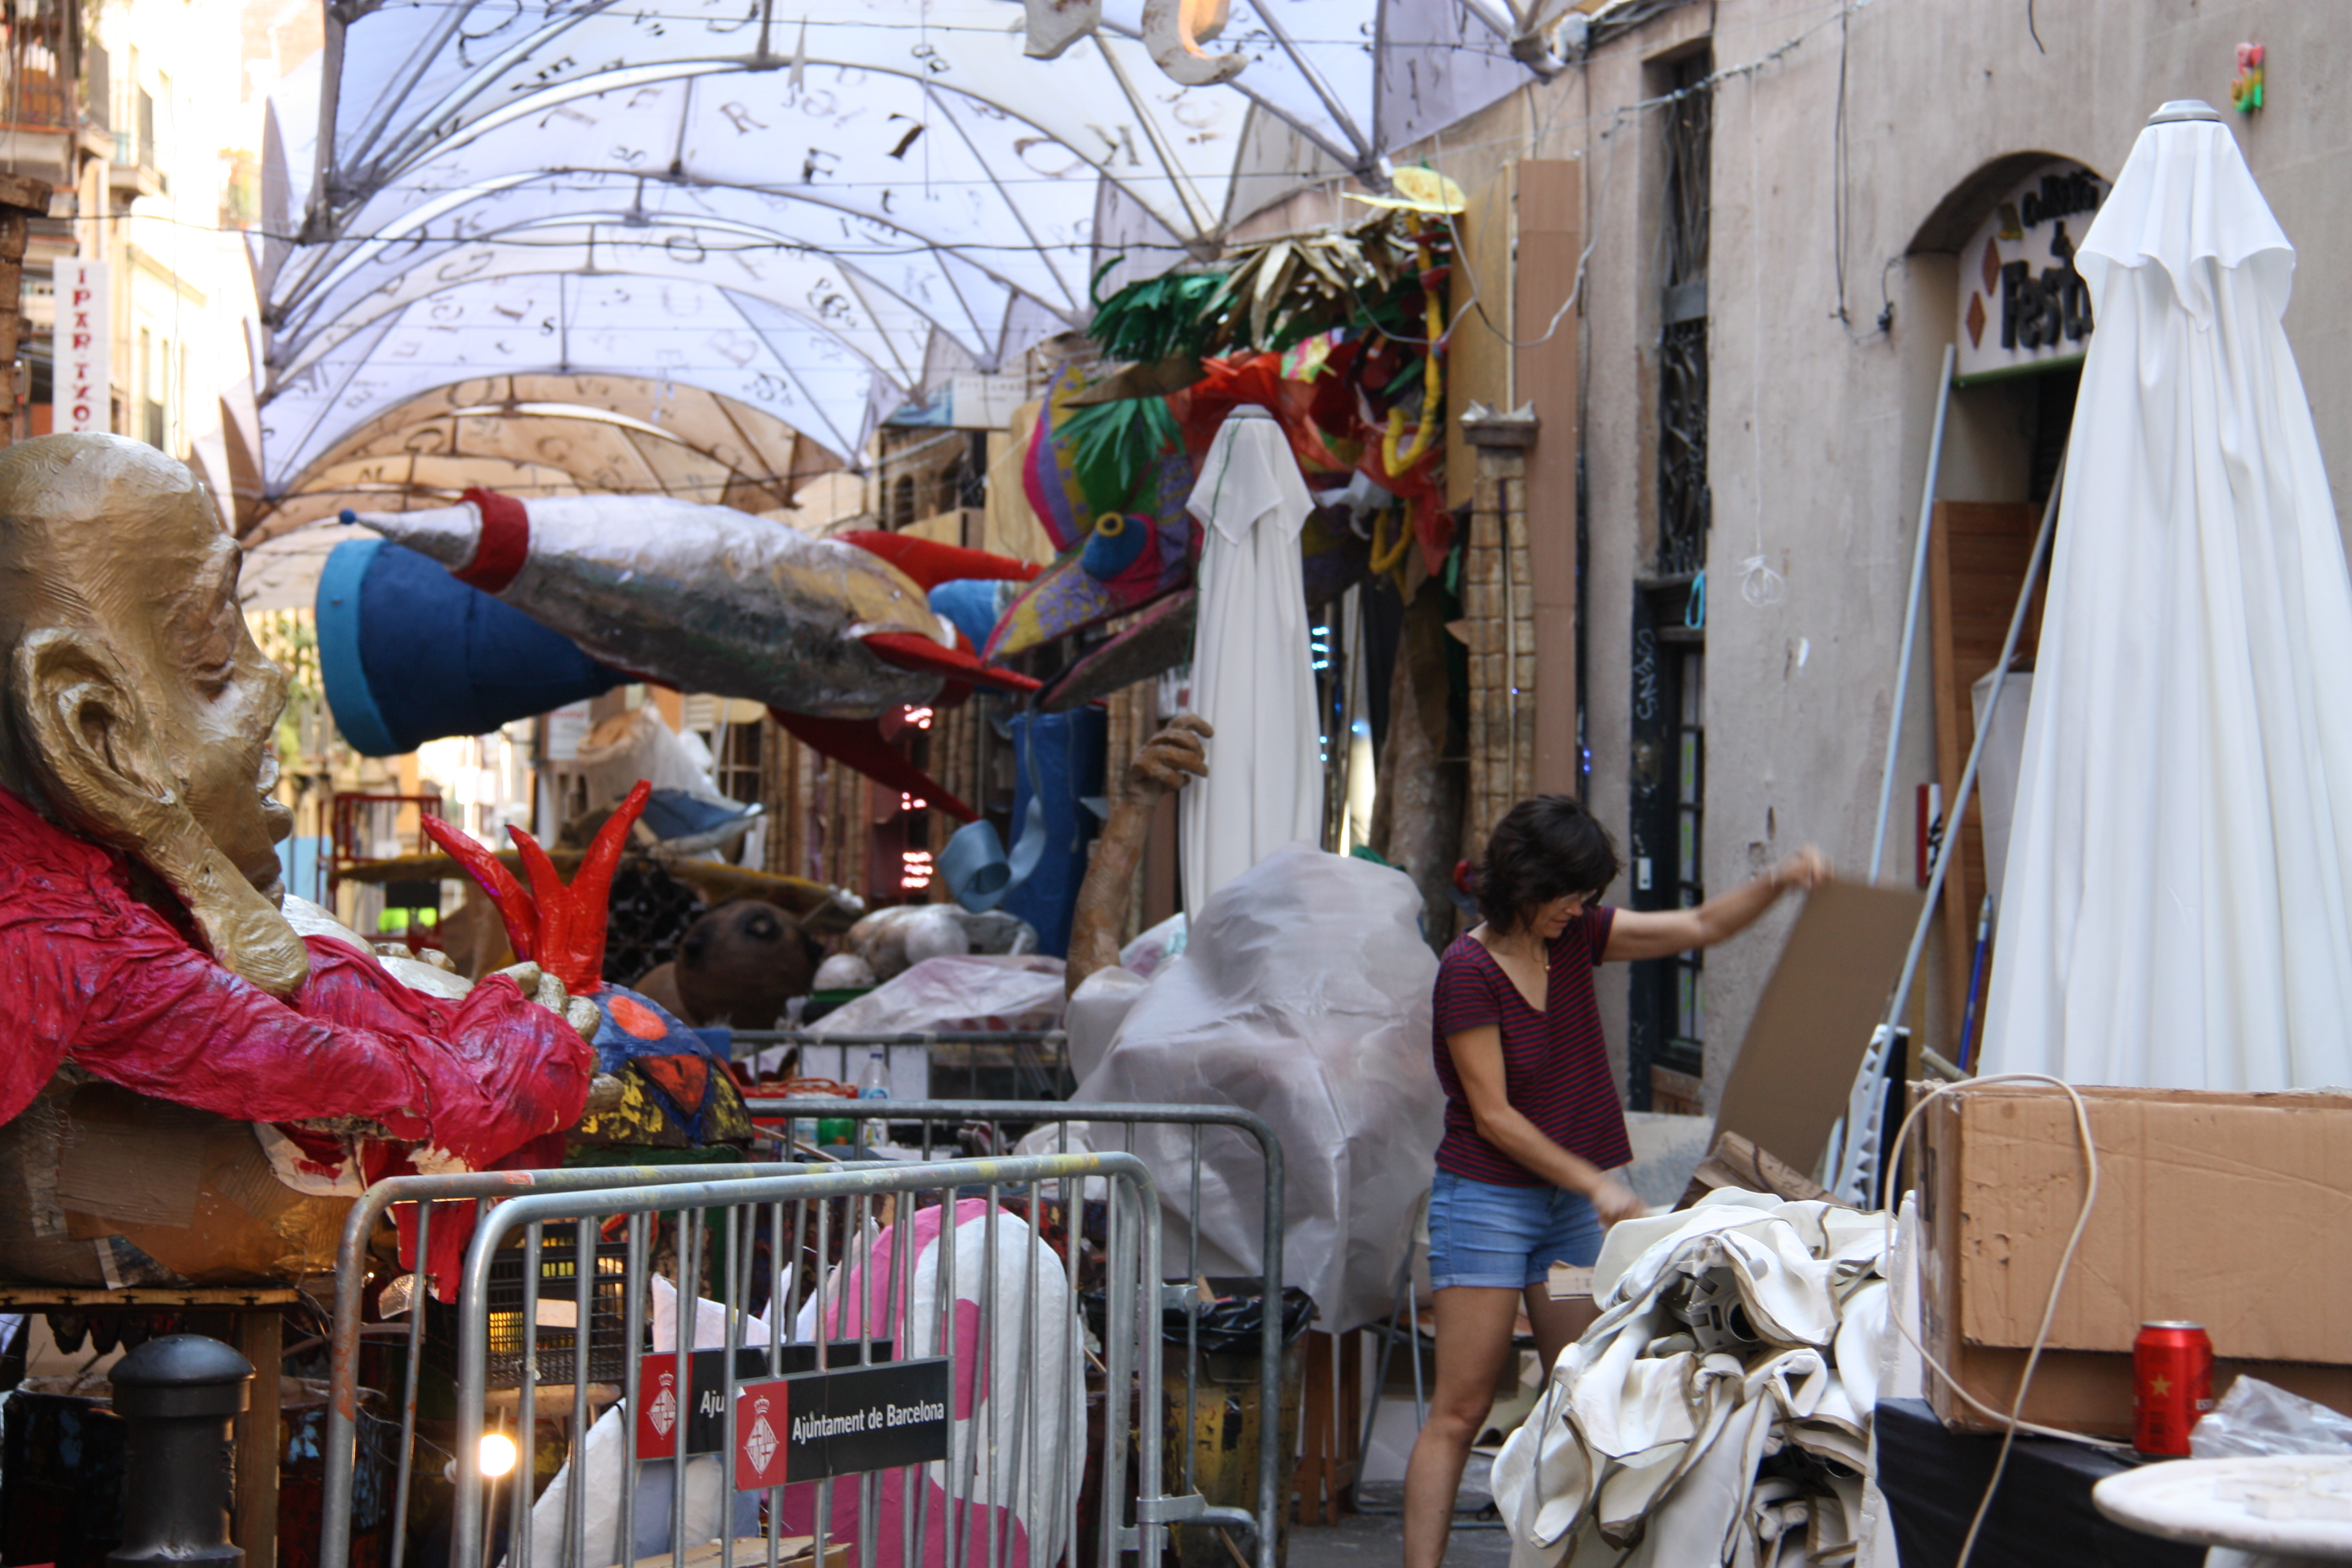 Preparations for the Gràcia festival have been underway for weeks (Ariana Coma)